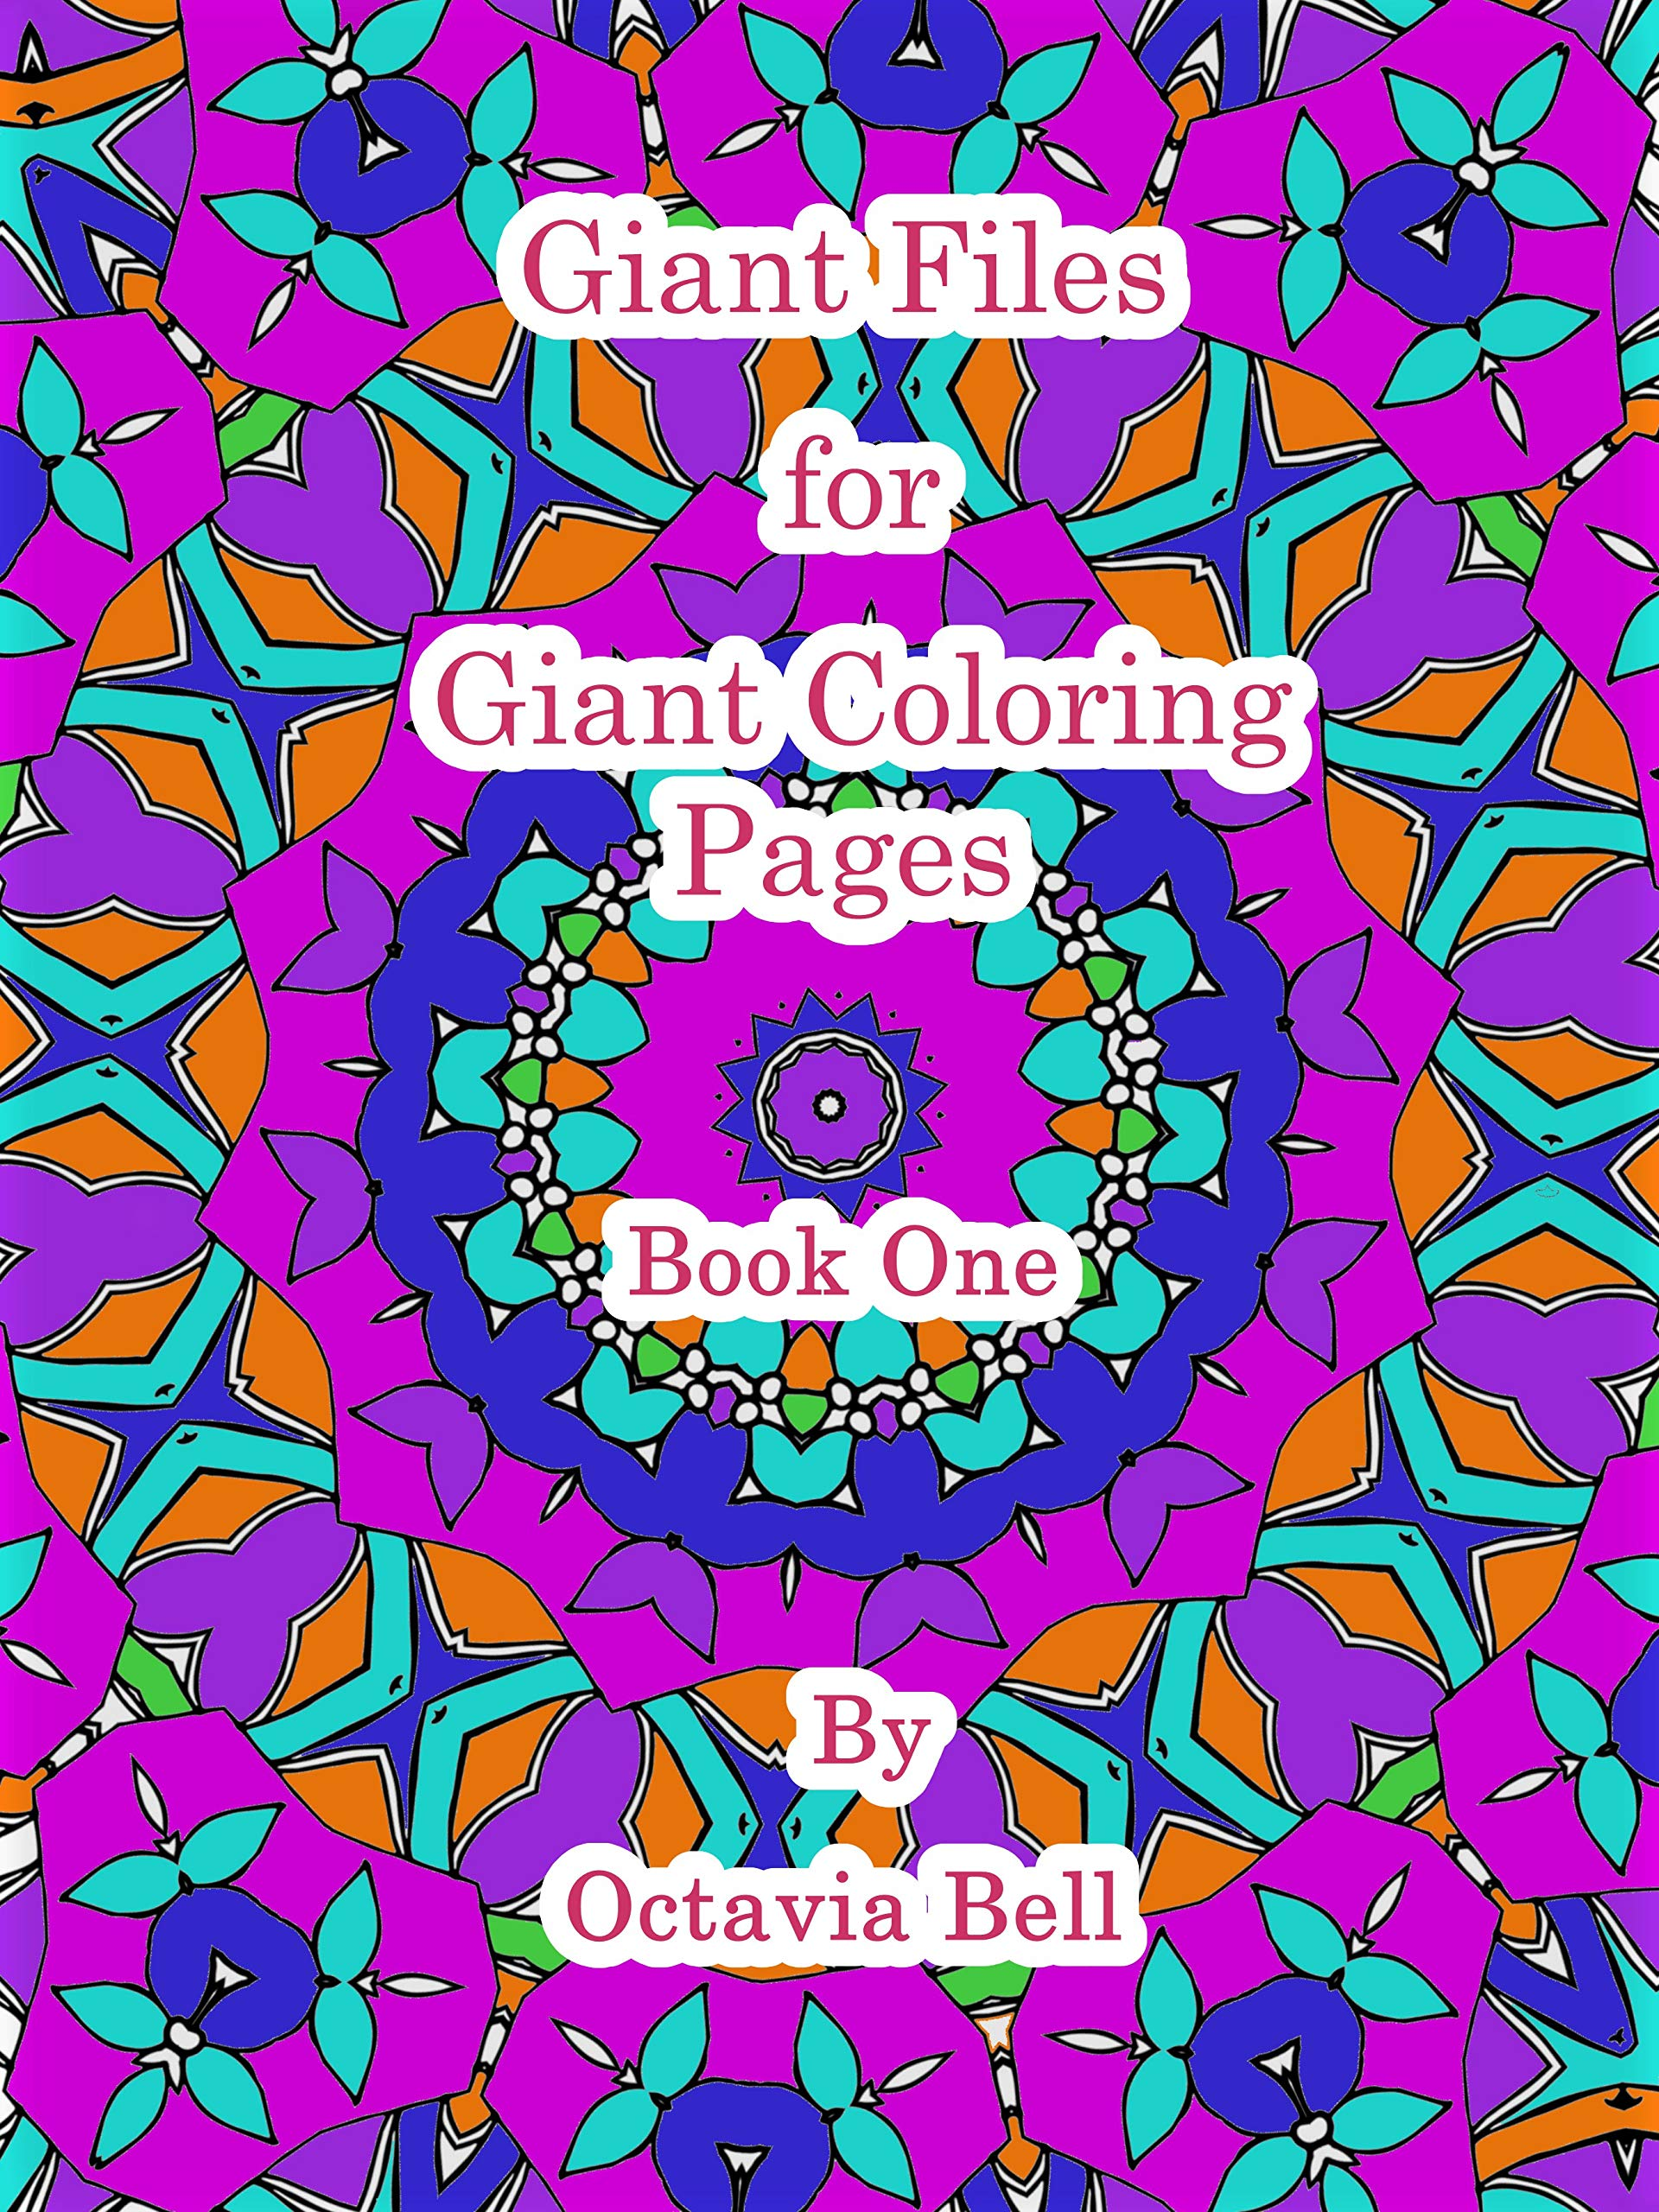 Giant Files for Giant Coloring Pages : Book One